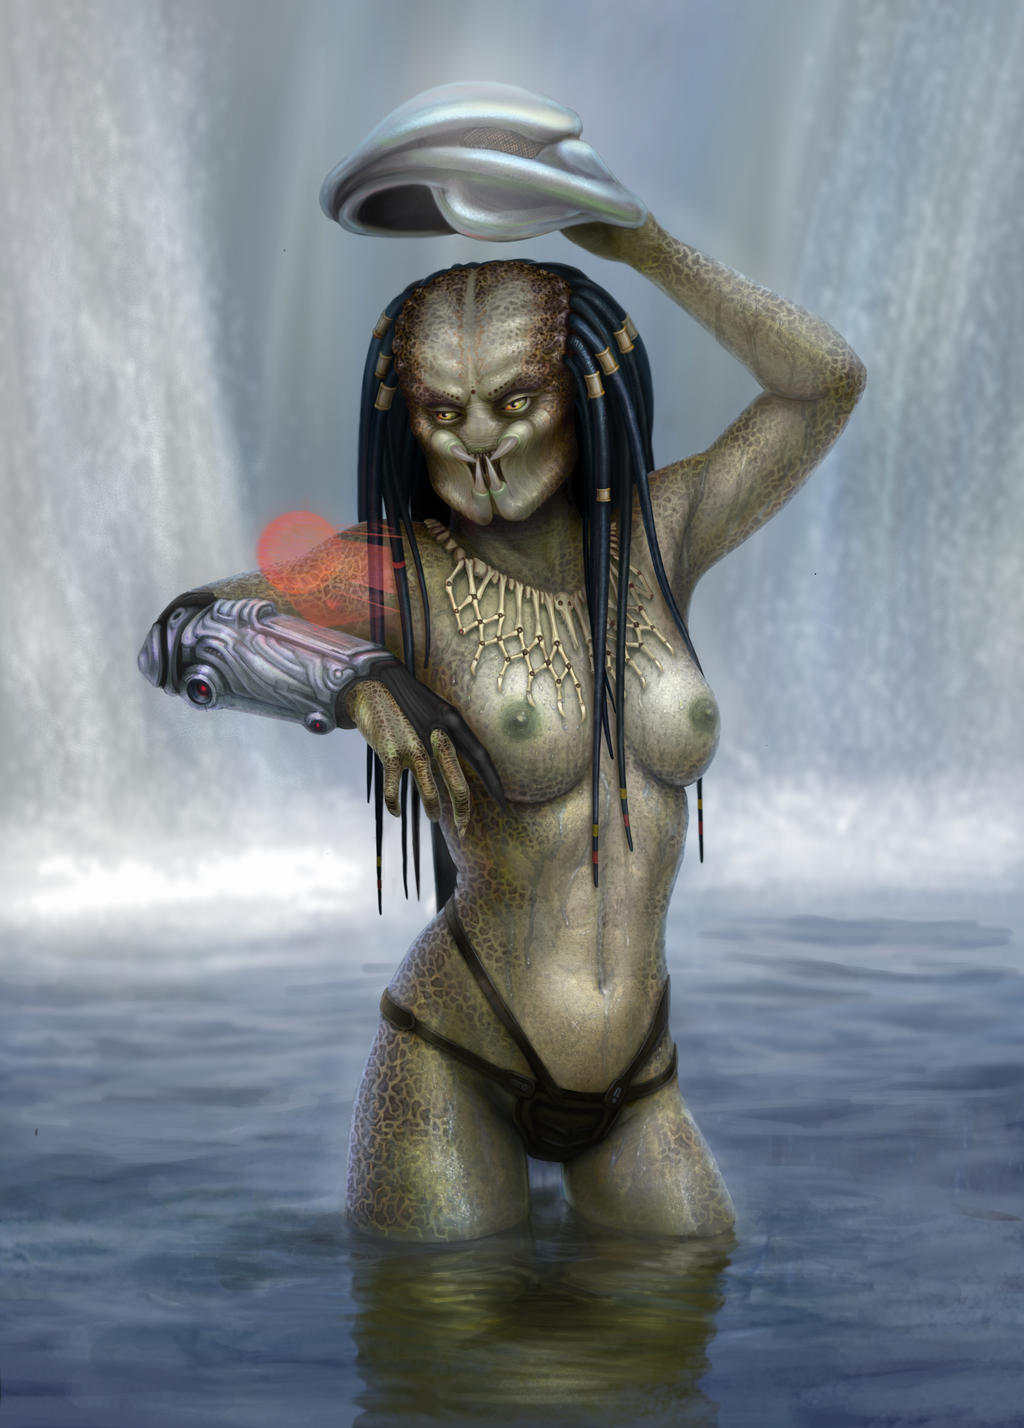 Predator girl in nuket picture can